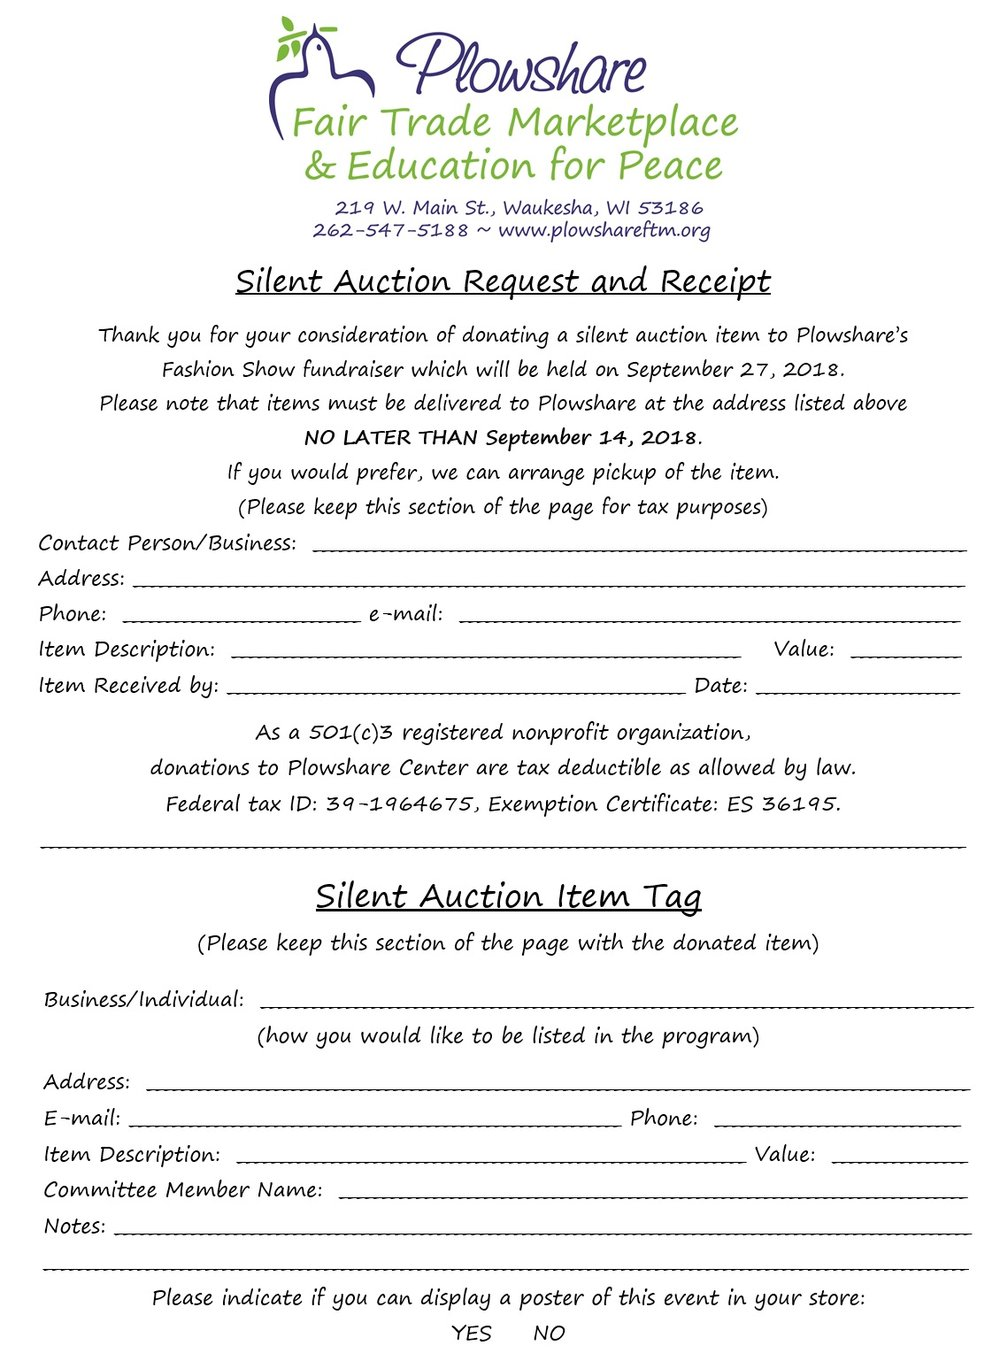 Silent Auction form '18.jpg